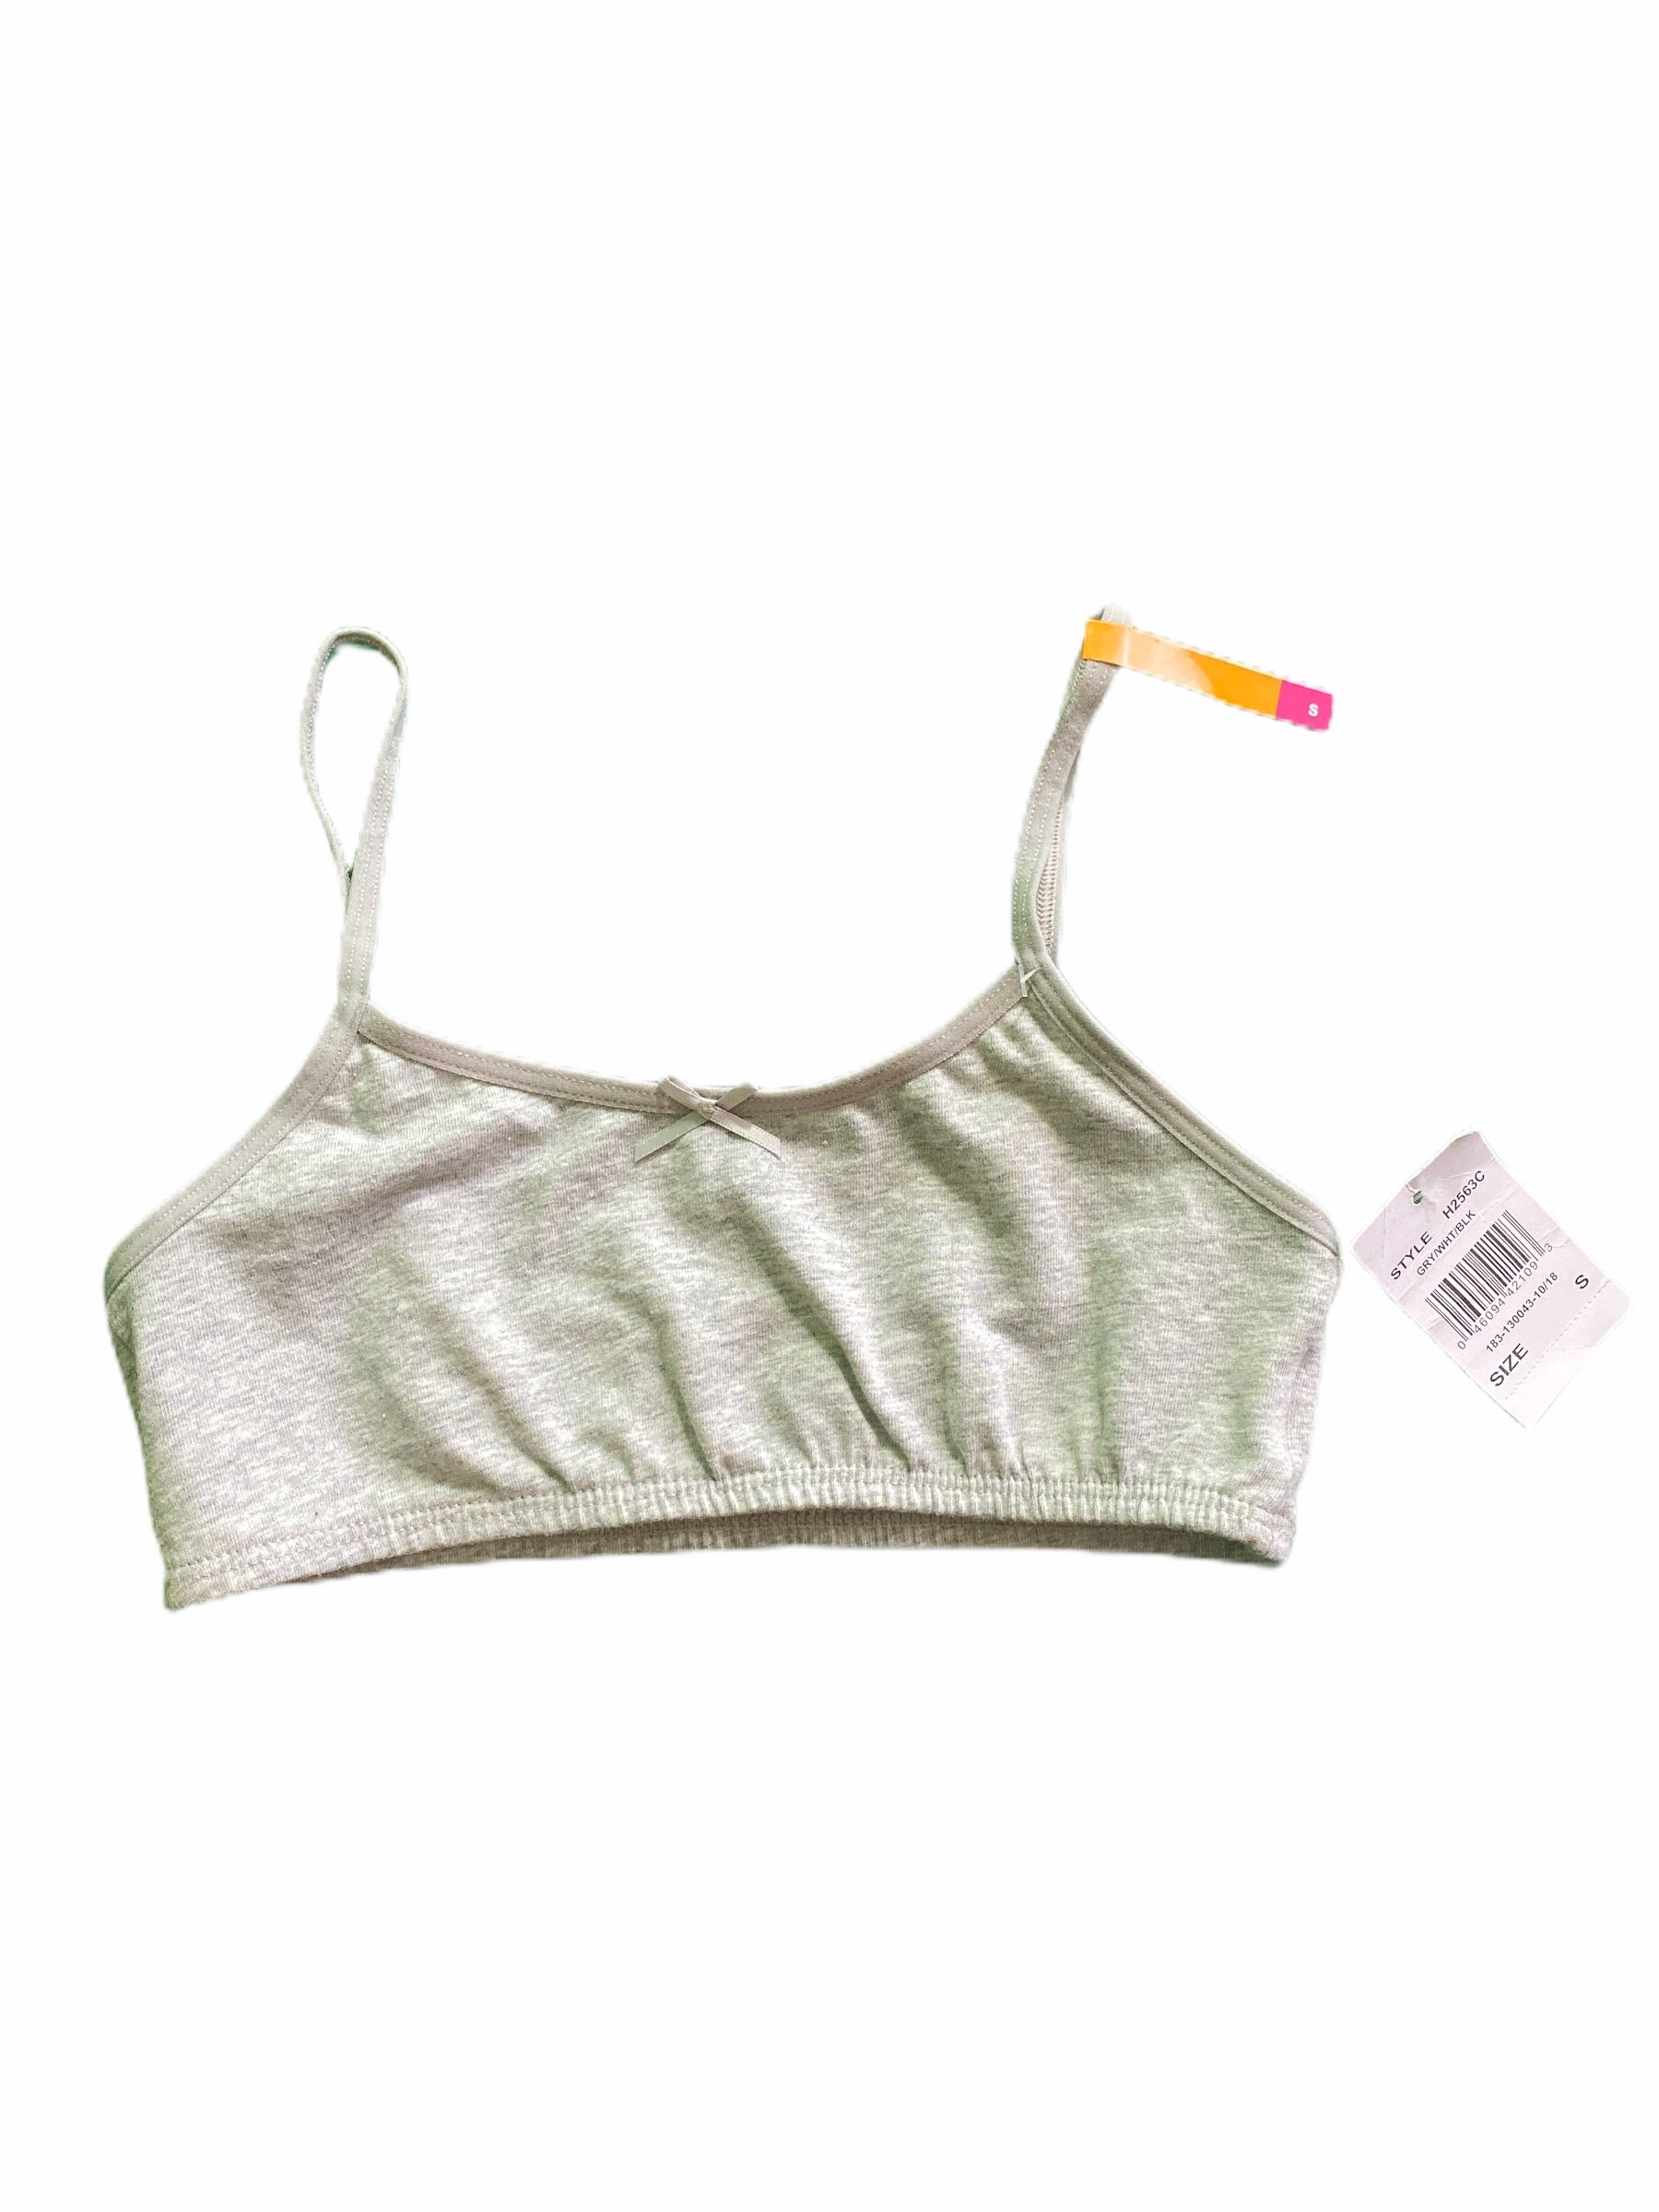 Madenform Gray Bralette (6/6X Girls)